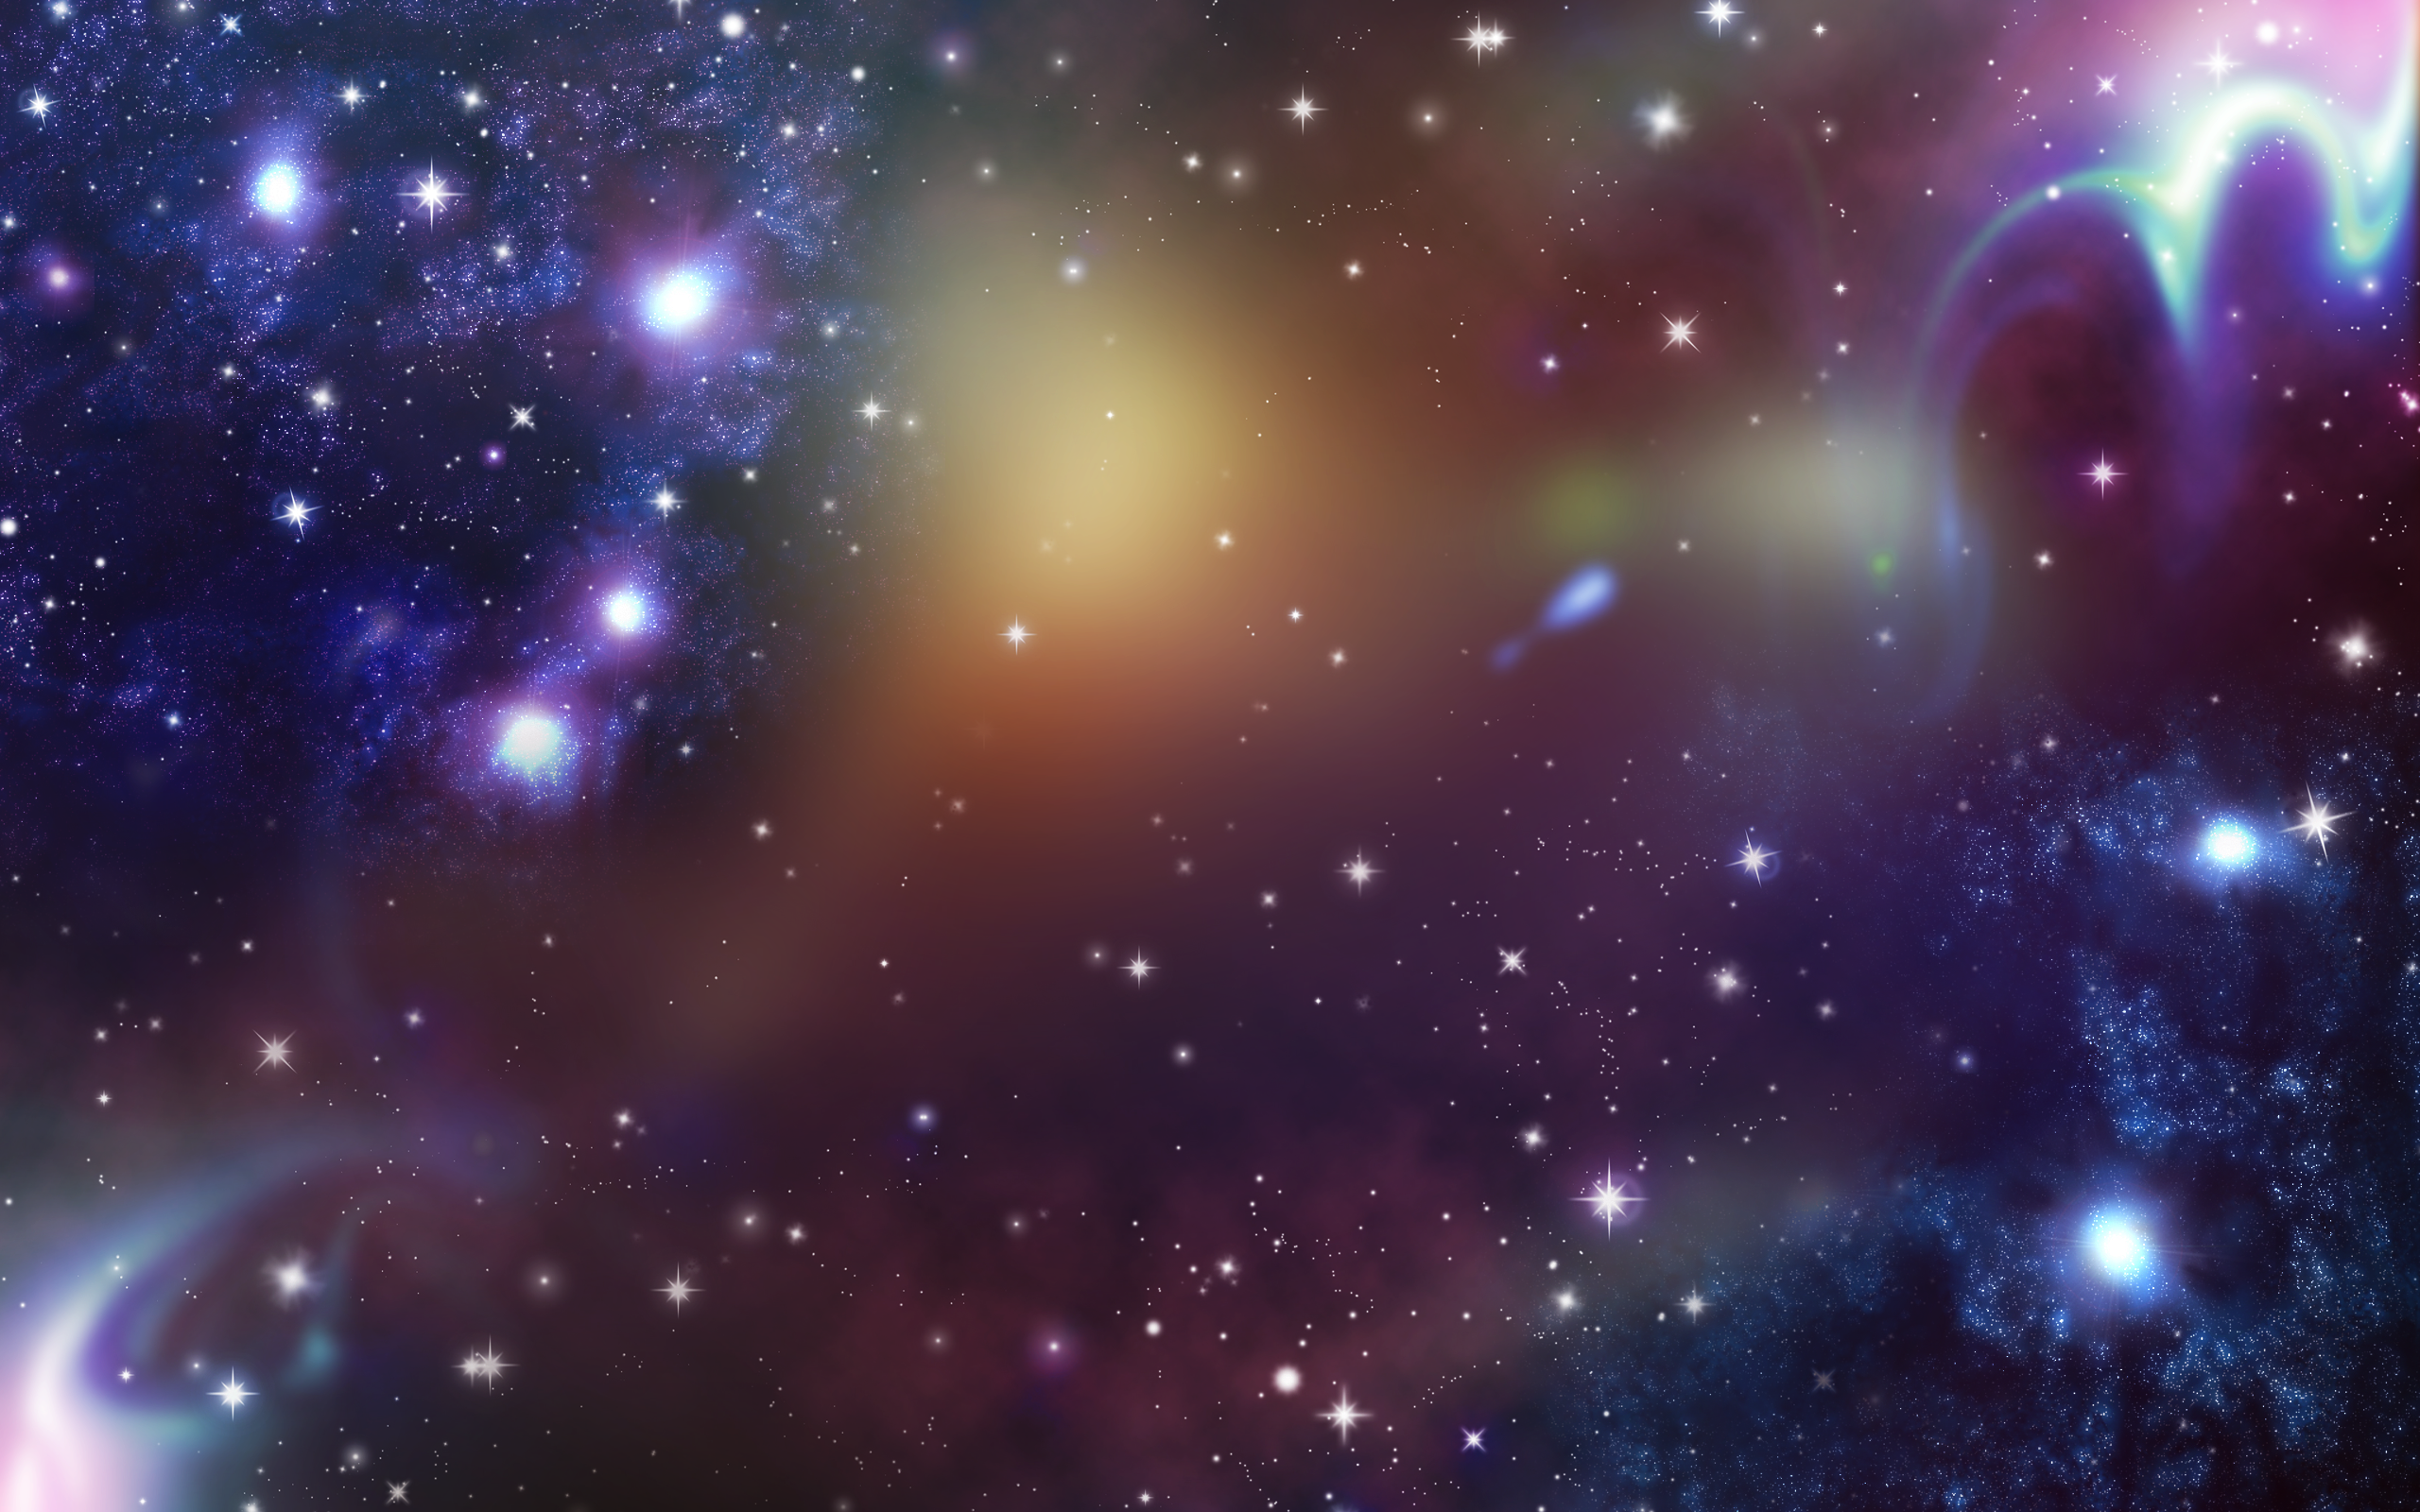 Space PNG - 5148